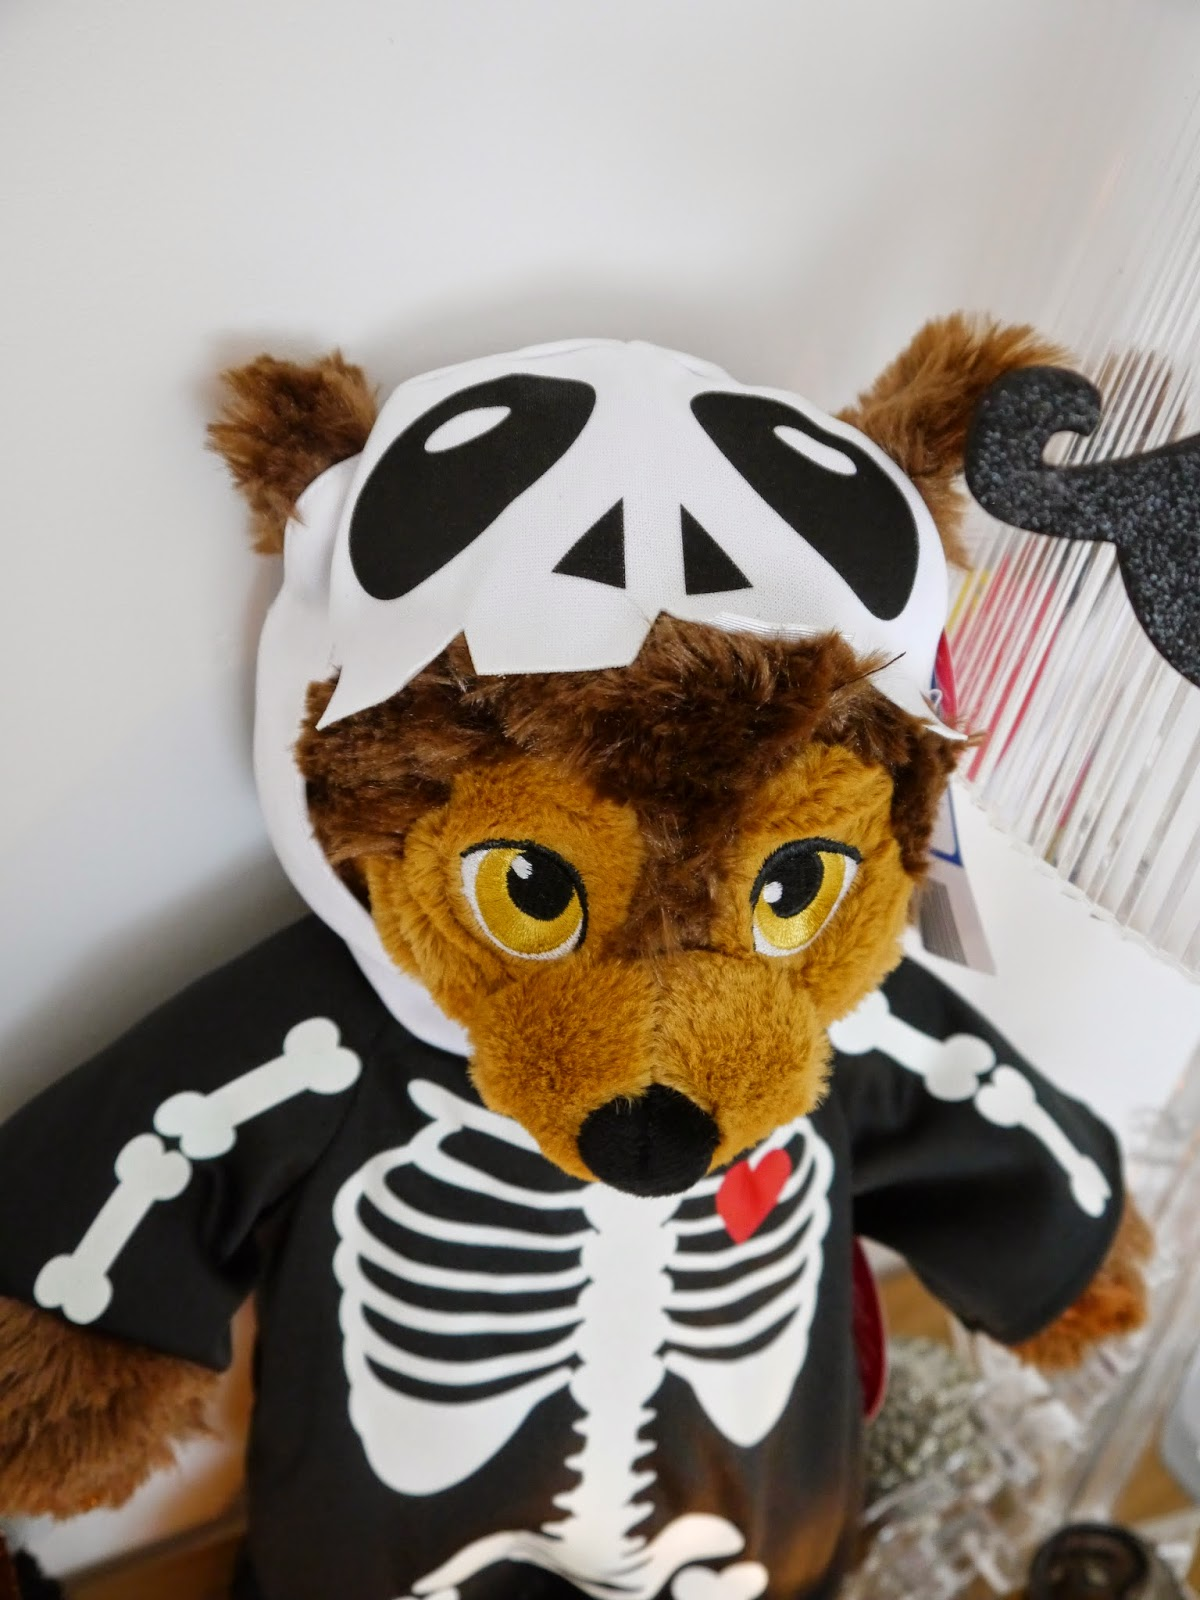 Handbags To Change Bags: Halloween At Build-A-Bear Workshop